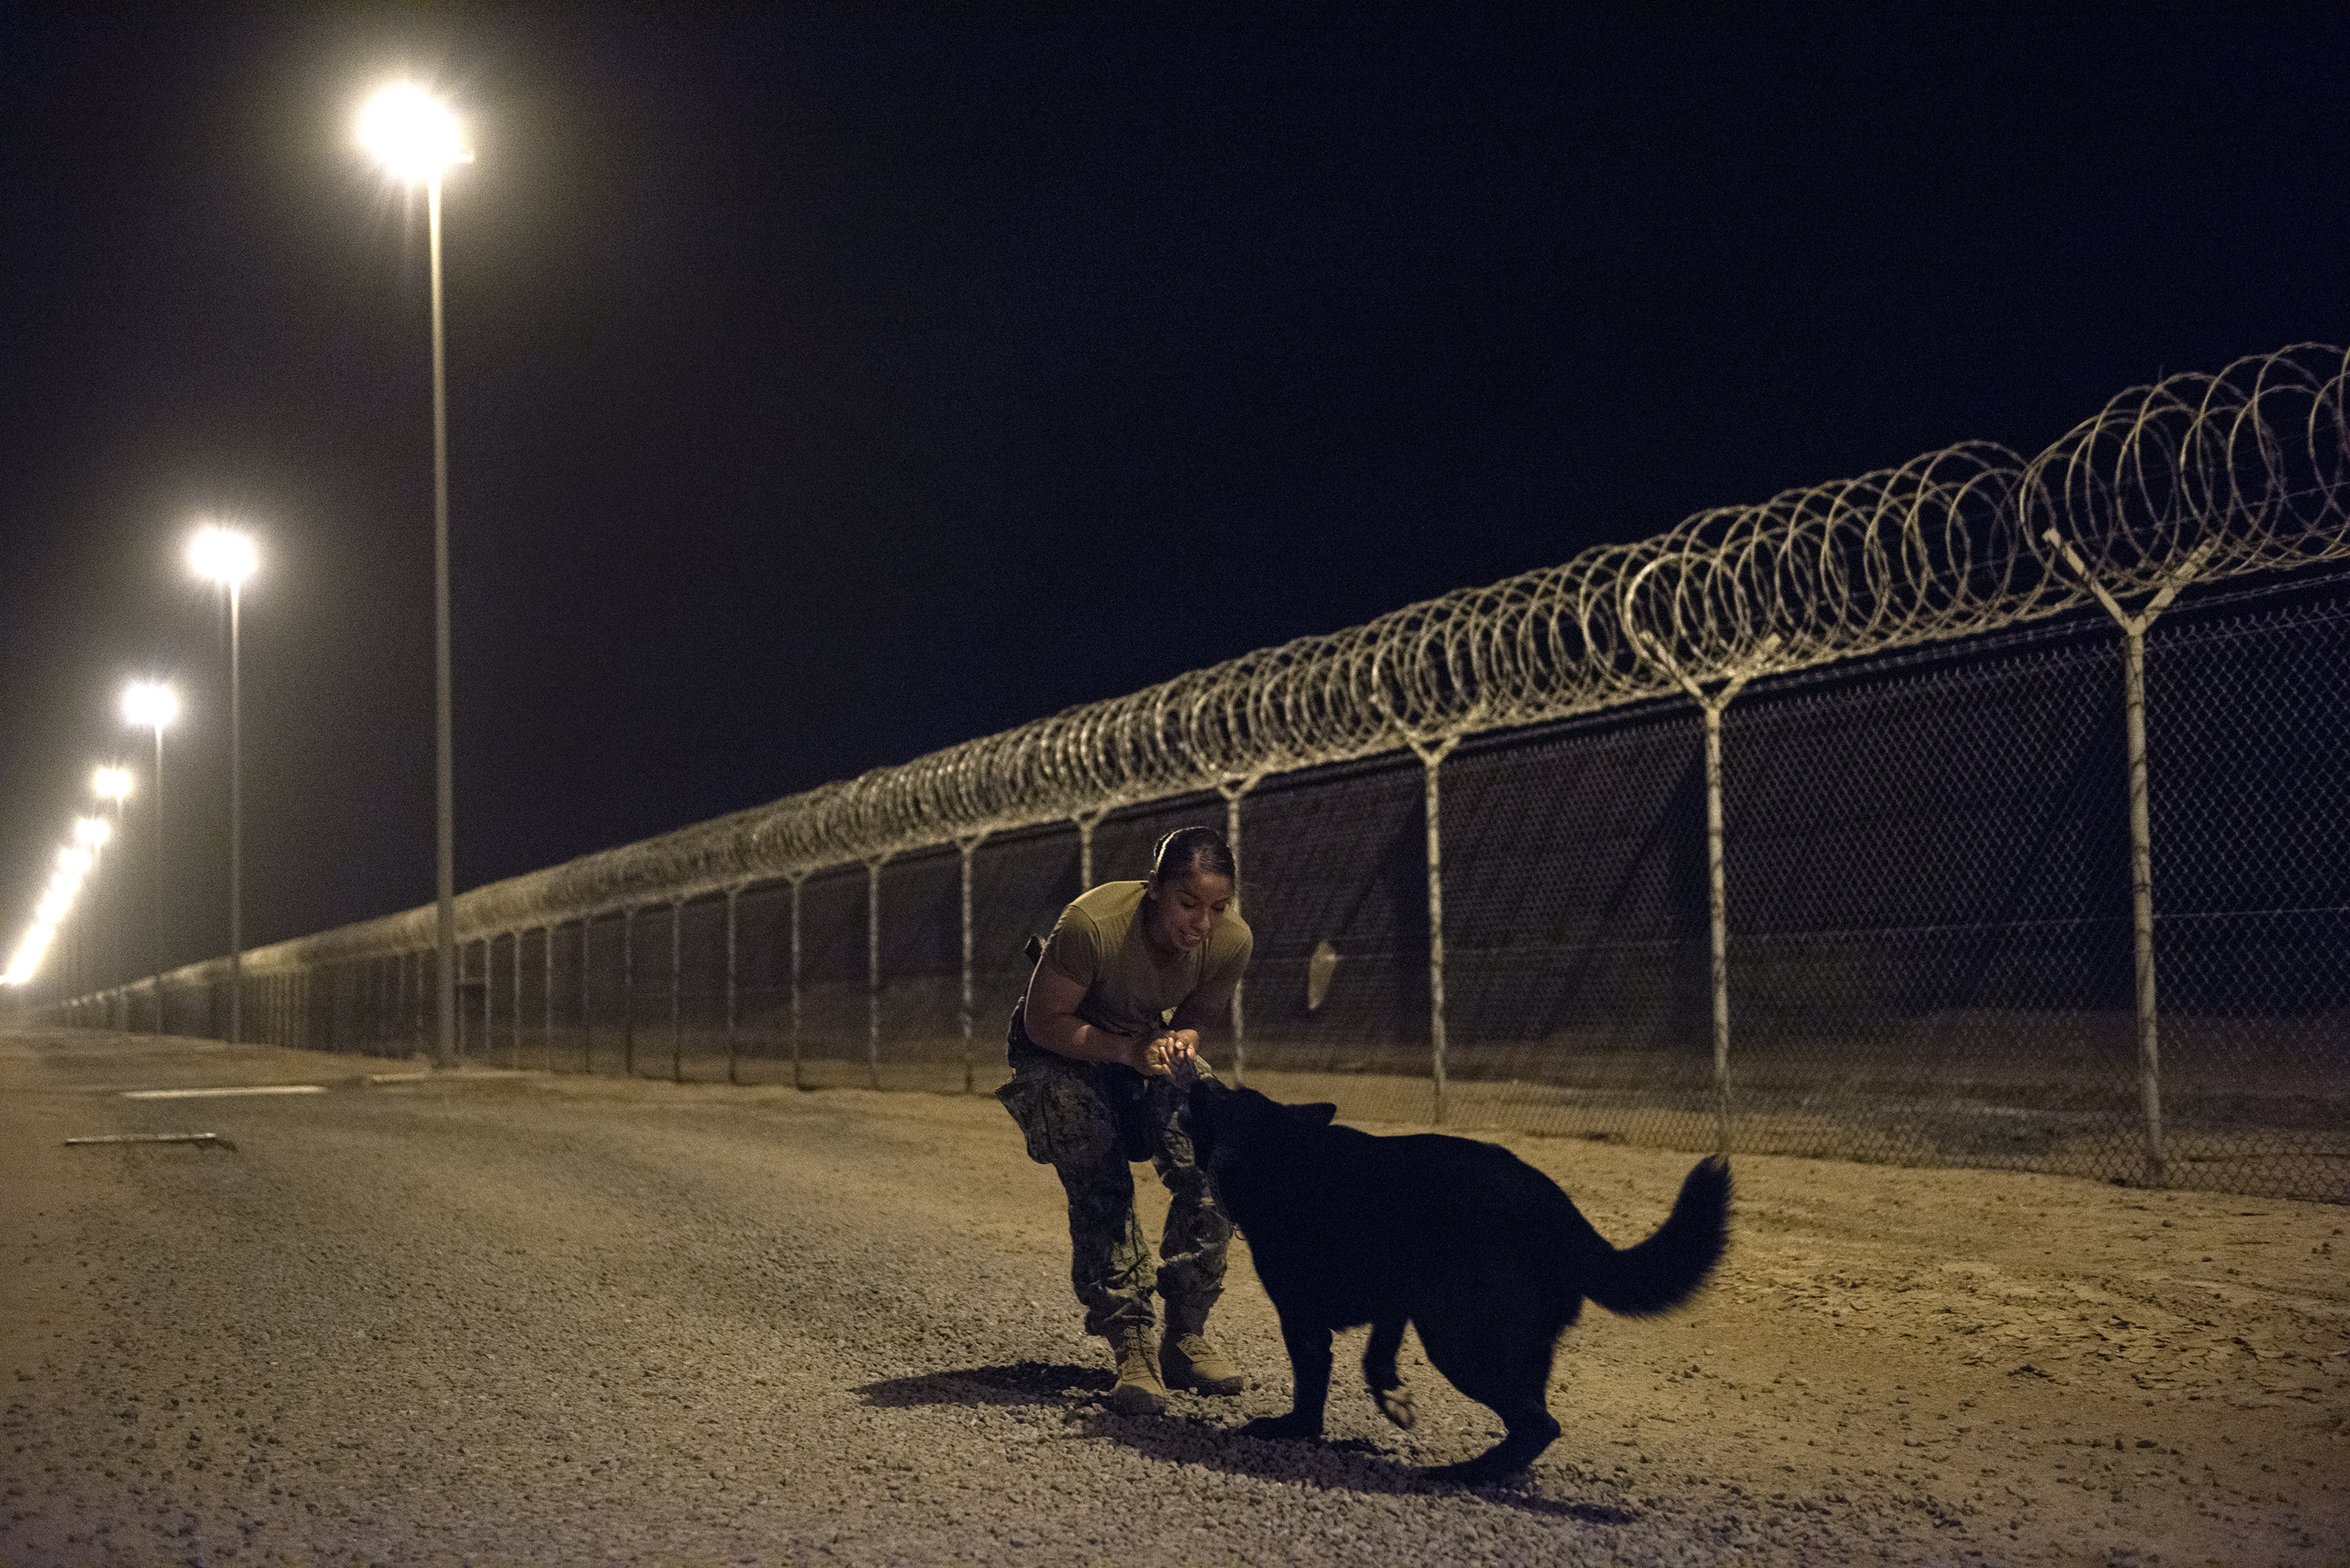 U.S. Navy Master-at-Arms 2nd Class Adrianna Lajas, a military working dog (MWD) handler rewards MWD Oliver after conducting proficiency training on Camp Lemonnier, Djibouti, July 31, 2018. Military Working Dogs can be used to perform searches, subdue suspects, and detect explosives and narcotics. (U.S. Air National Guard photo by Master Sgt. Sarah Mattison)